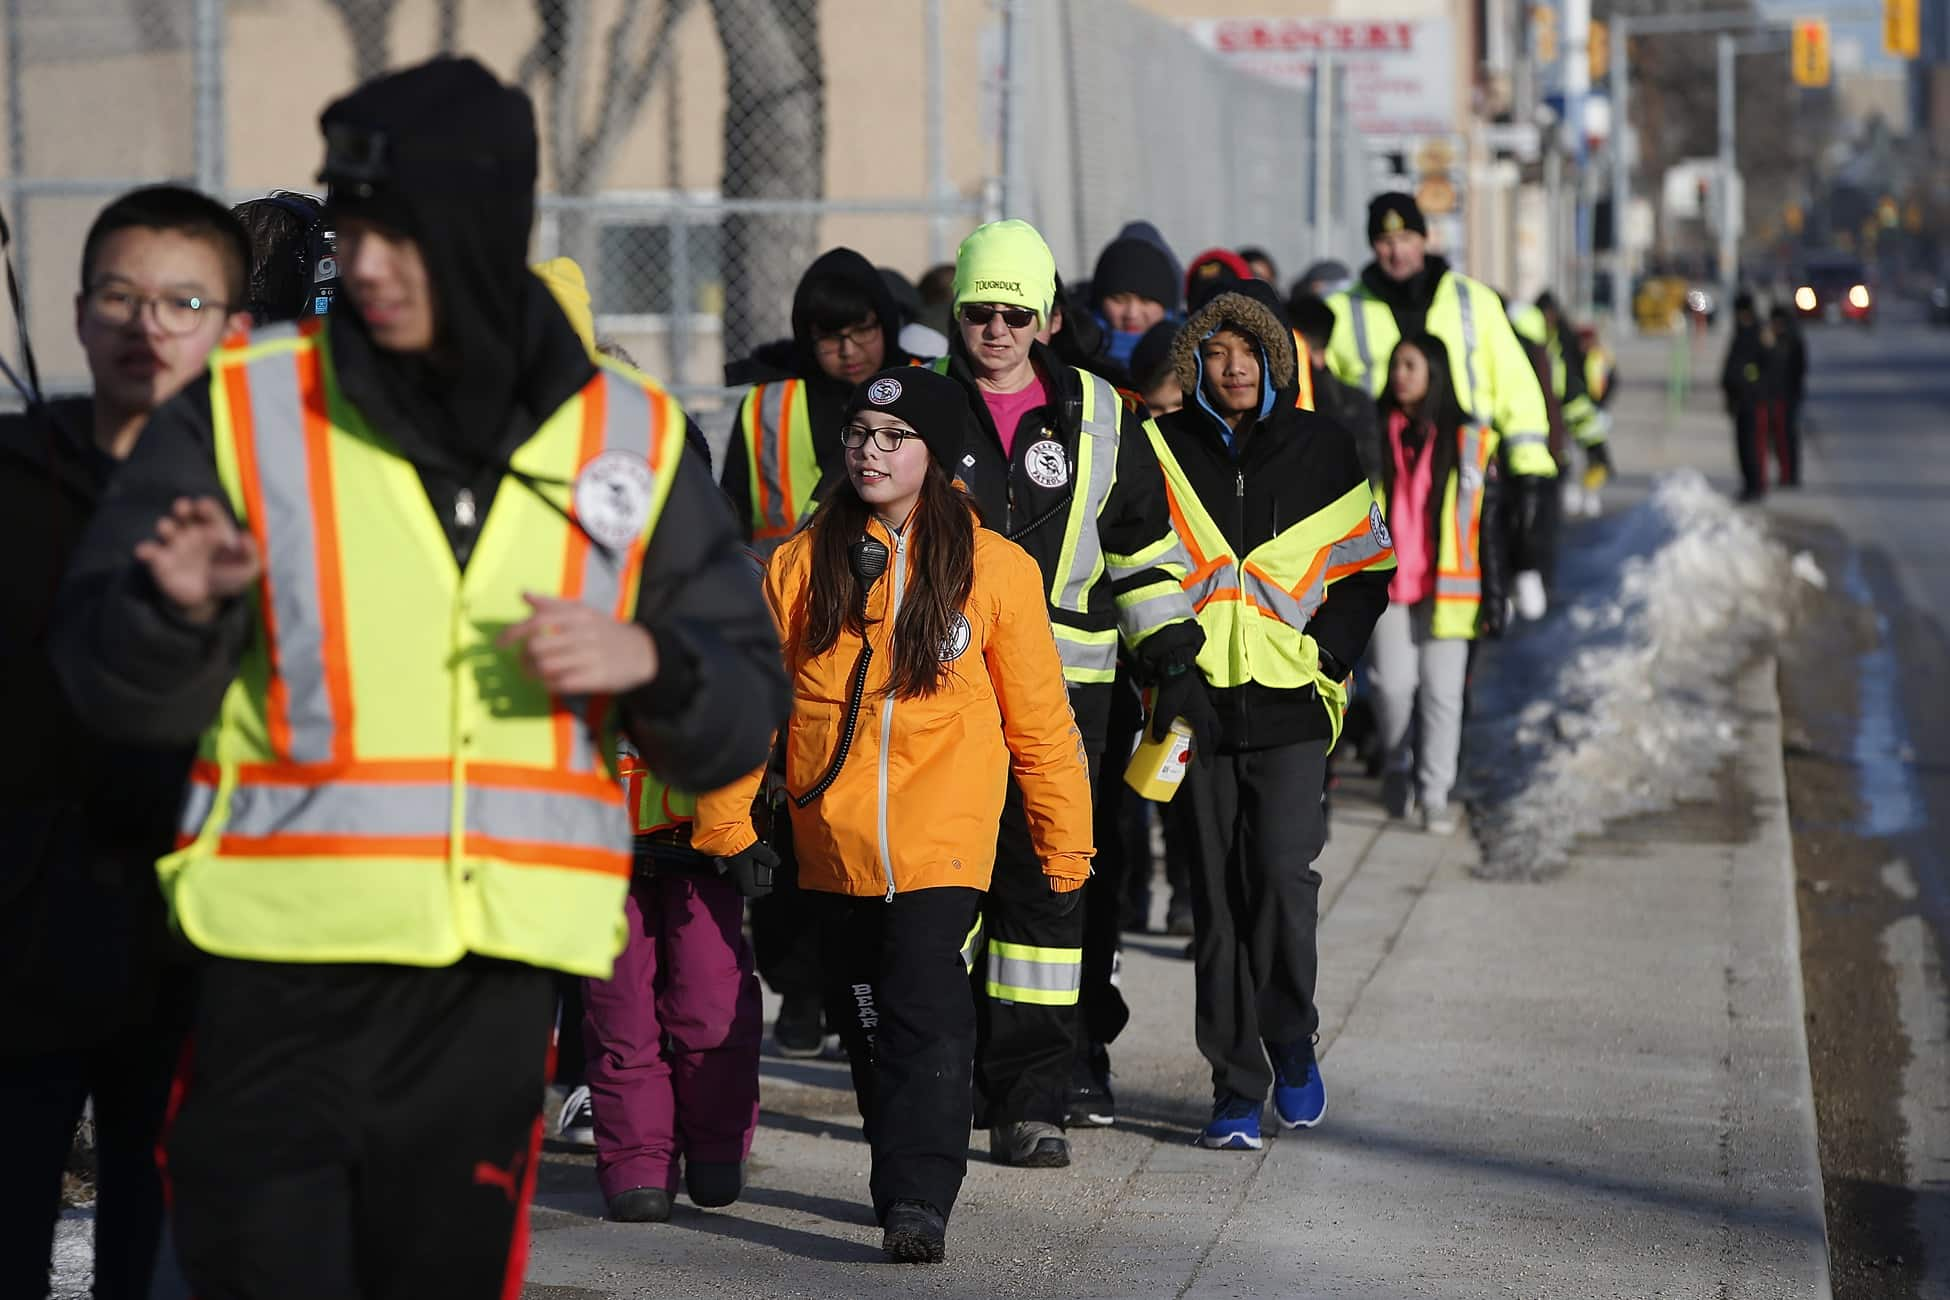 Dozens of students donned neon vests to patrol the West End streets surrounding General Wolfe School after the afternoon bell rang, marking the first time the Indigenous-led community watch group has partnered with schools. (John Woods / Winnipeg Free Press)